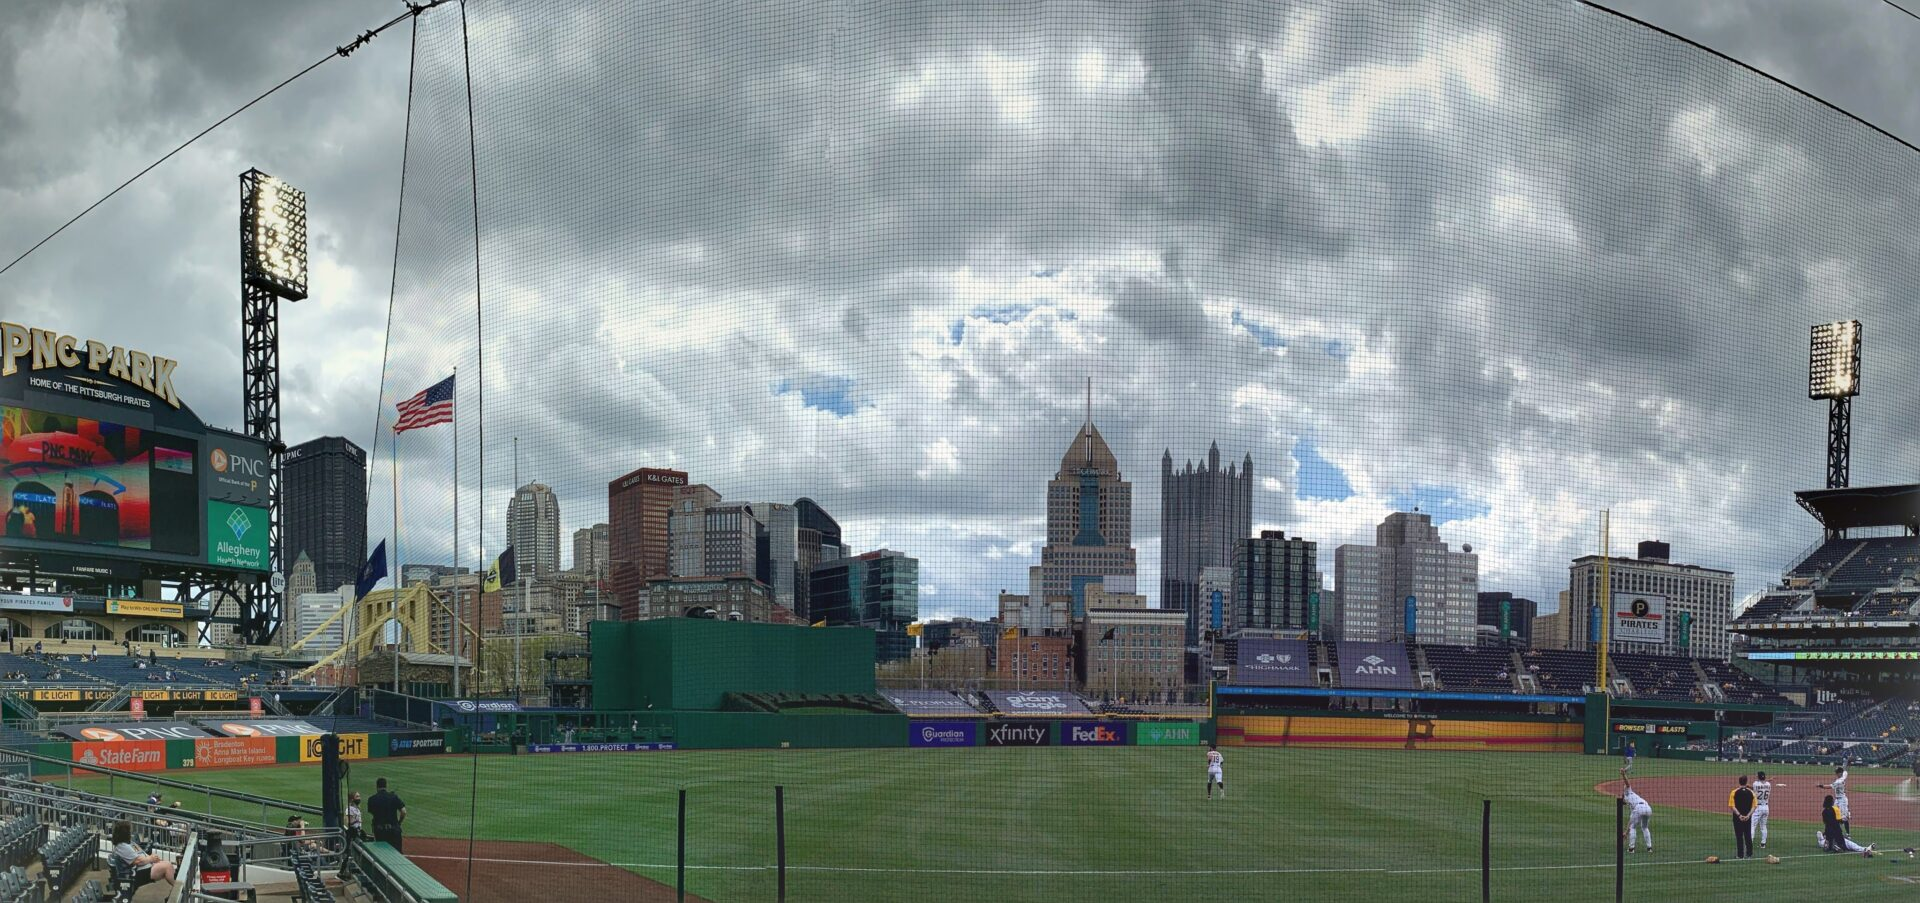 Read more about the article Pirates v Cubs @ PNC Park